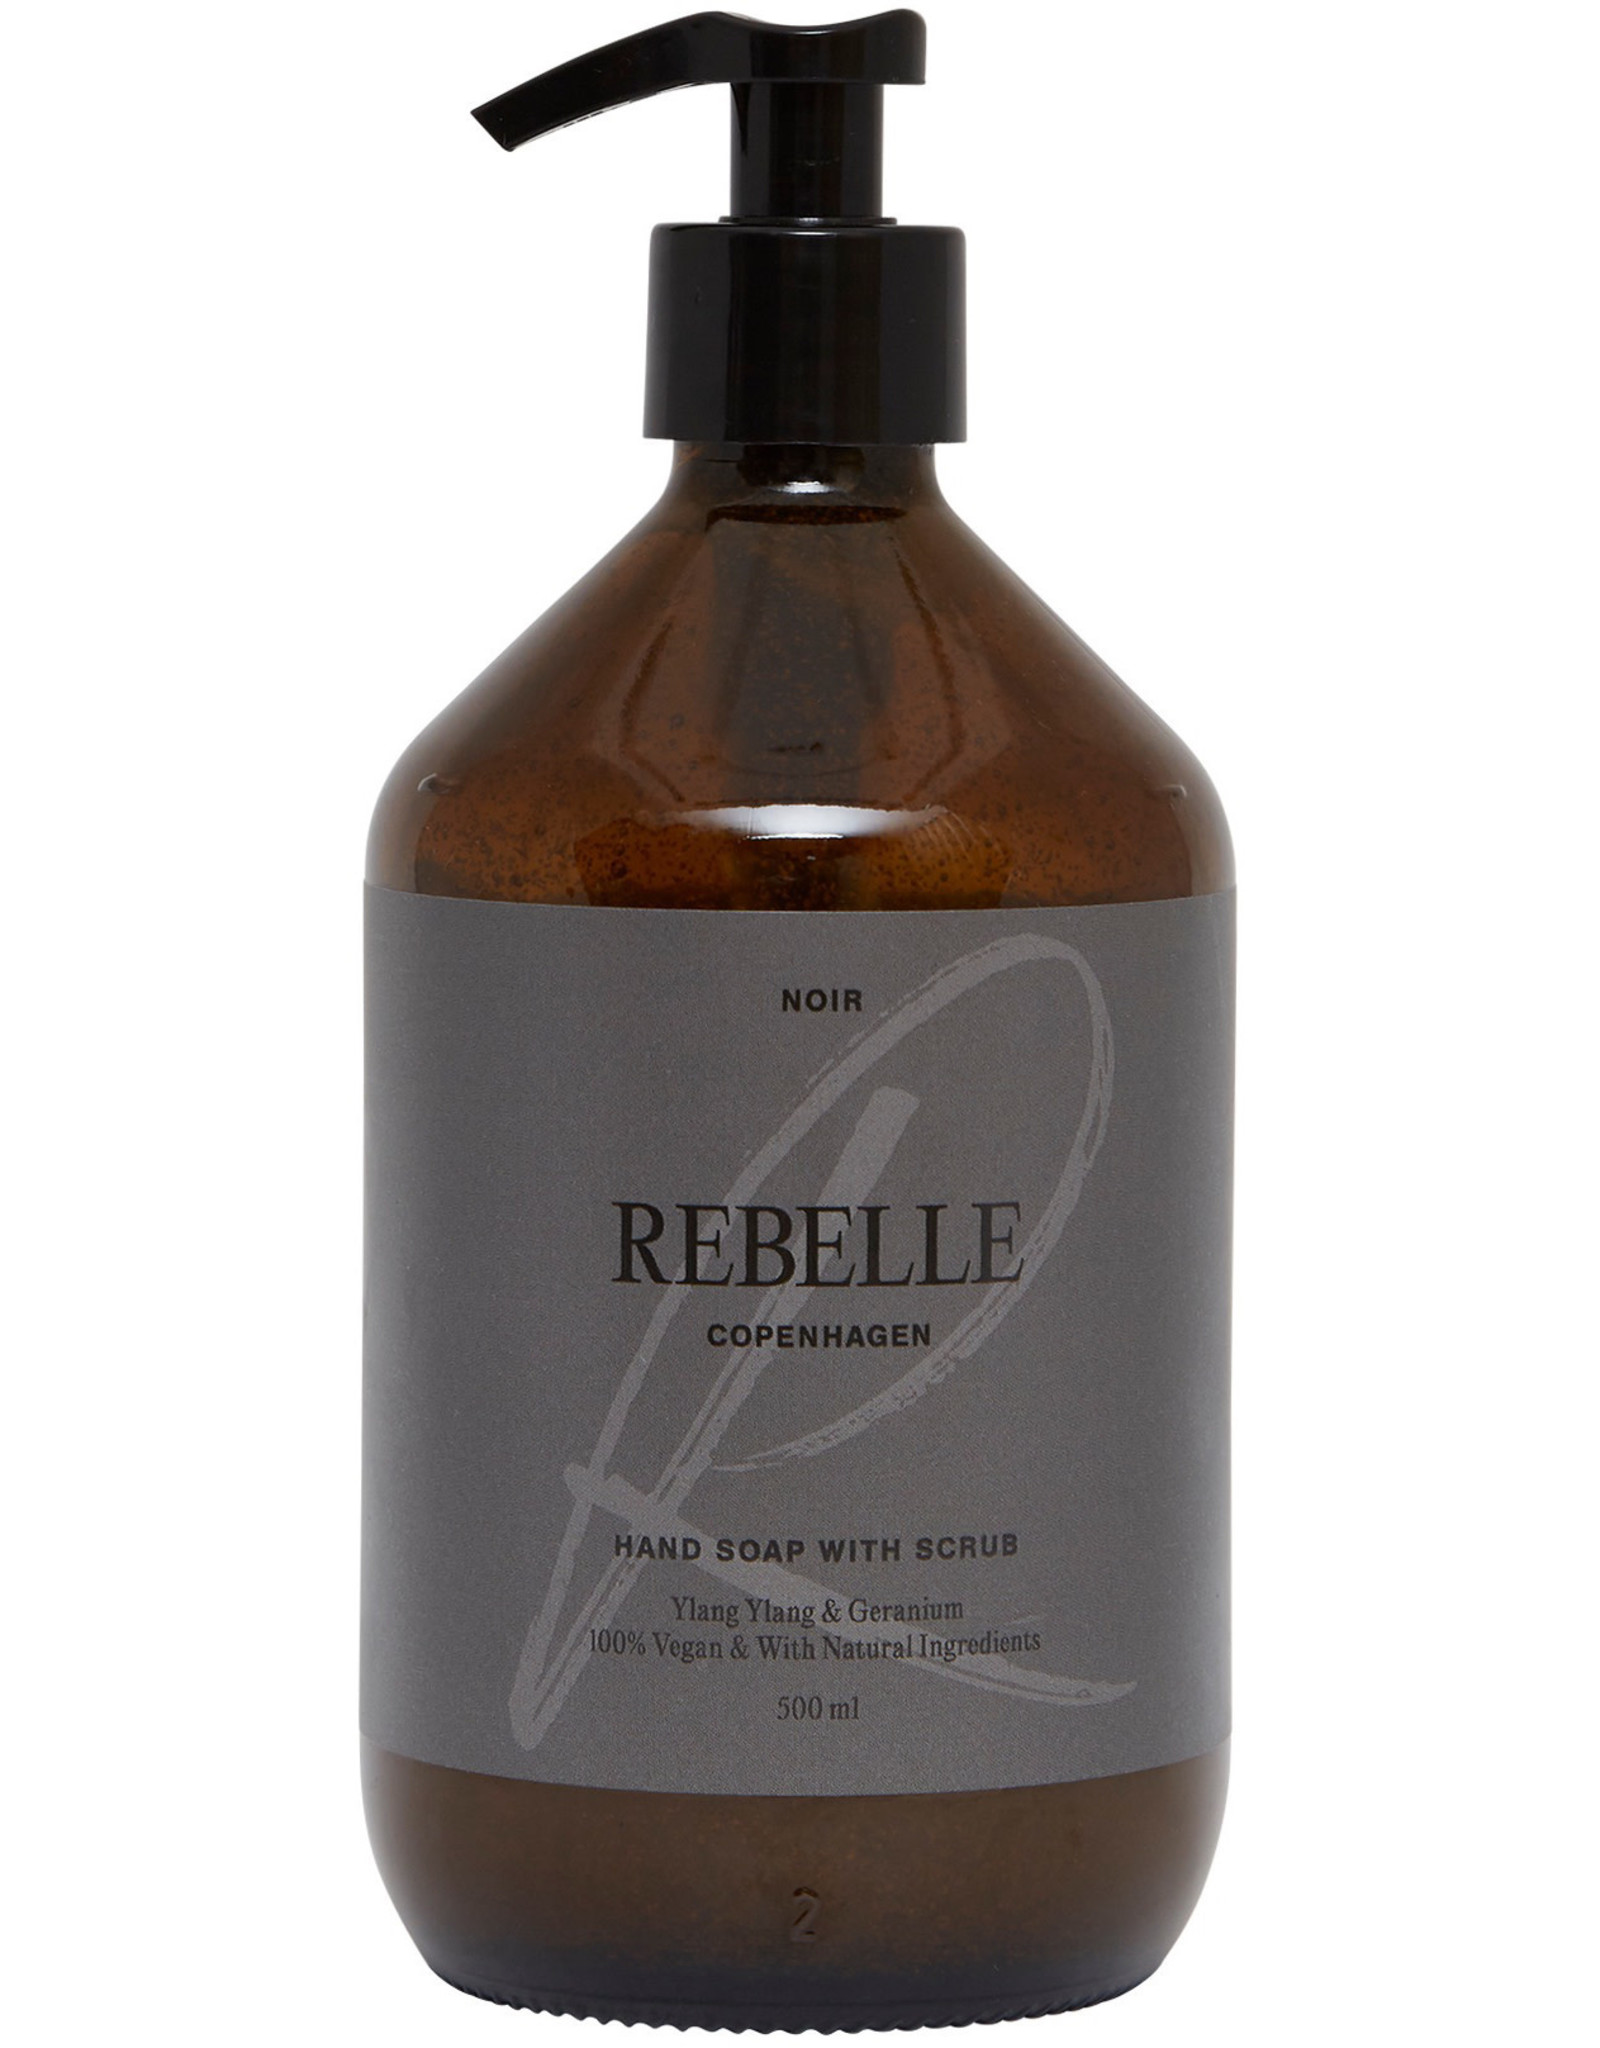 Rebelle Rebelle Vegan Hand Soap With Scrub Noir